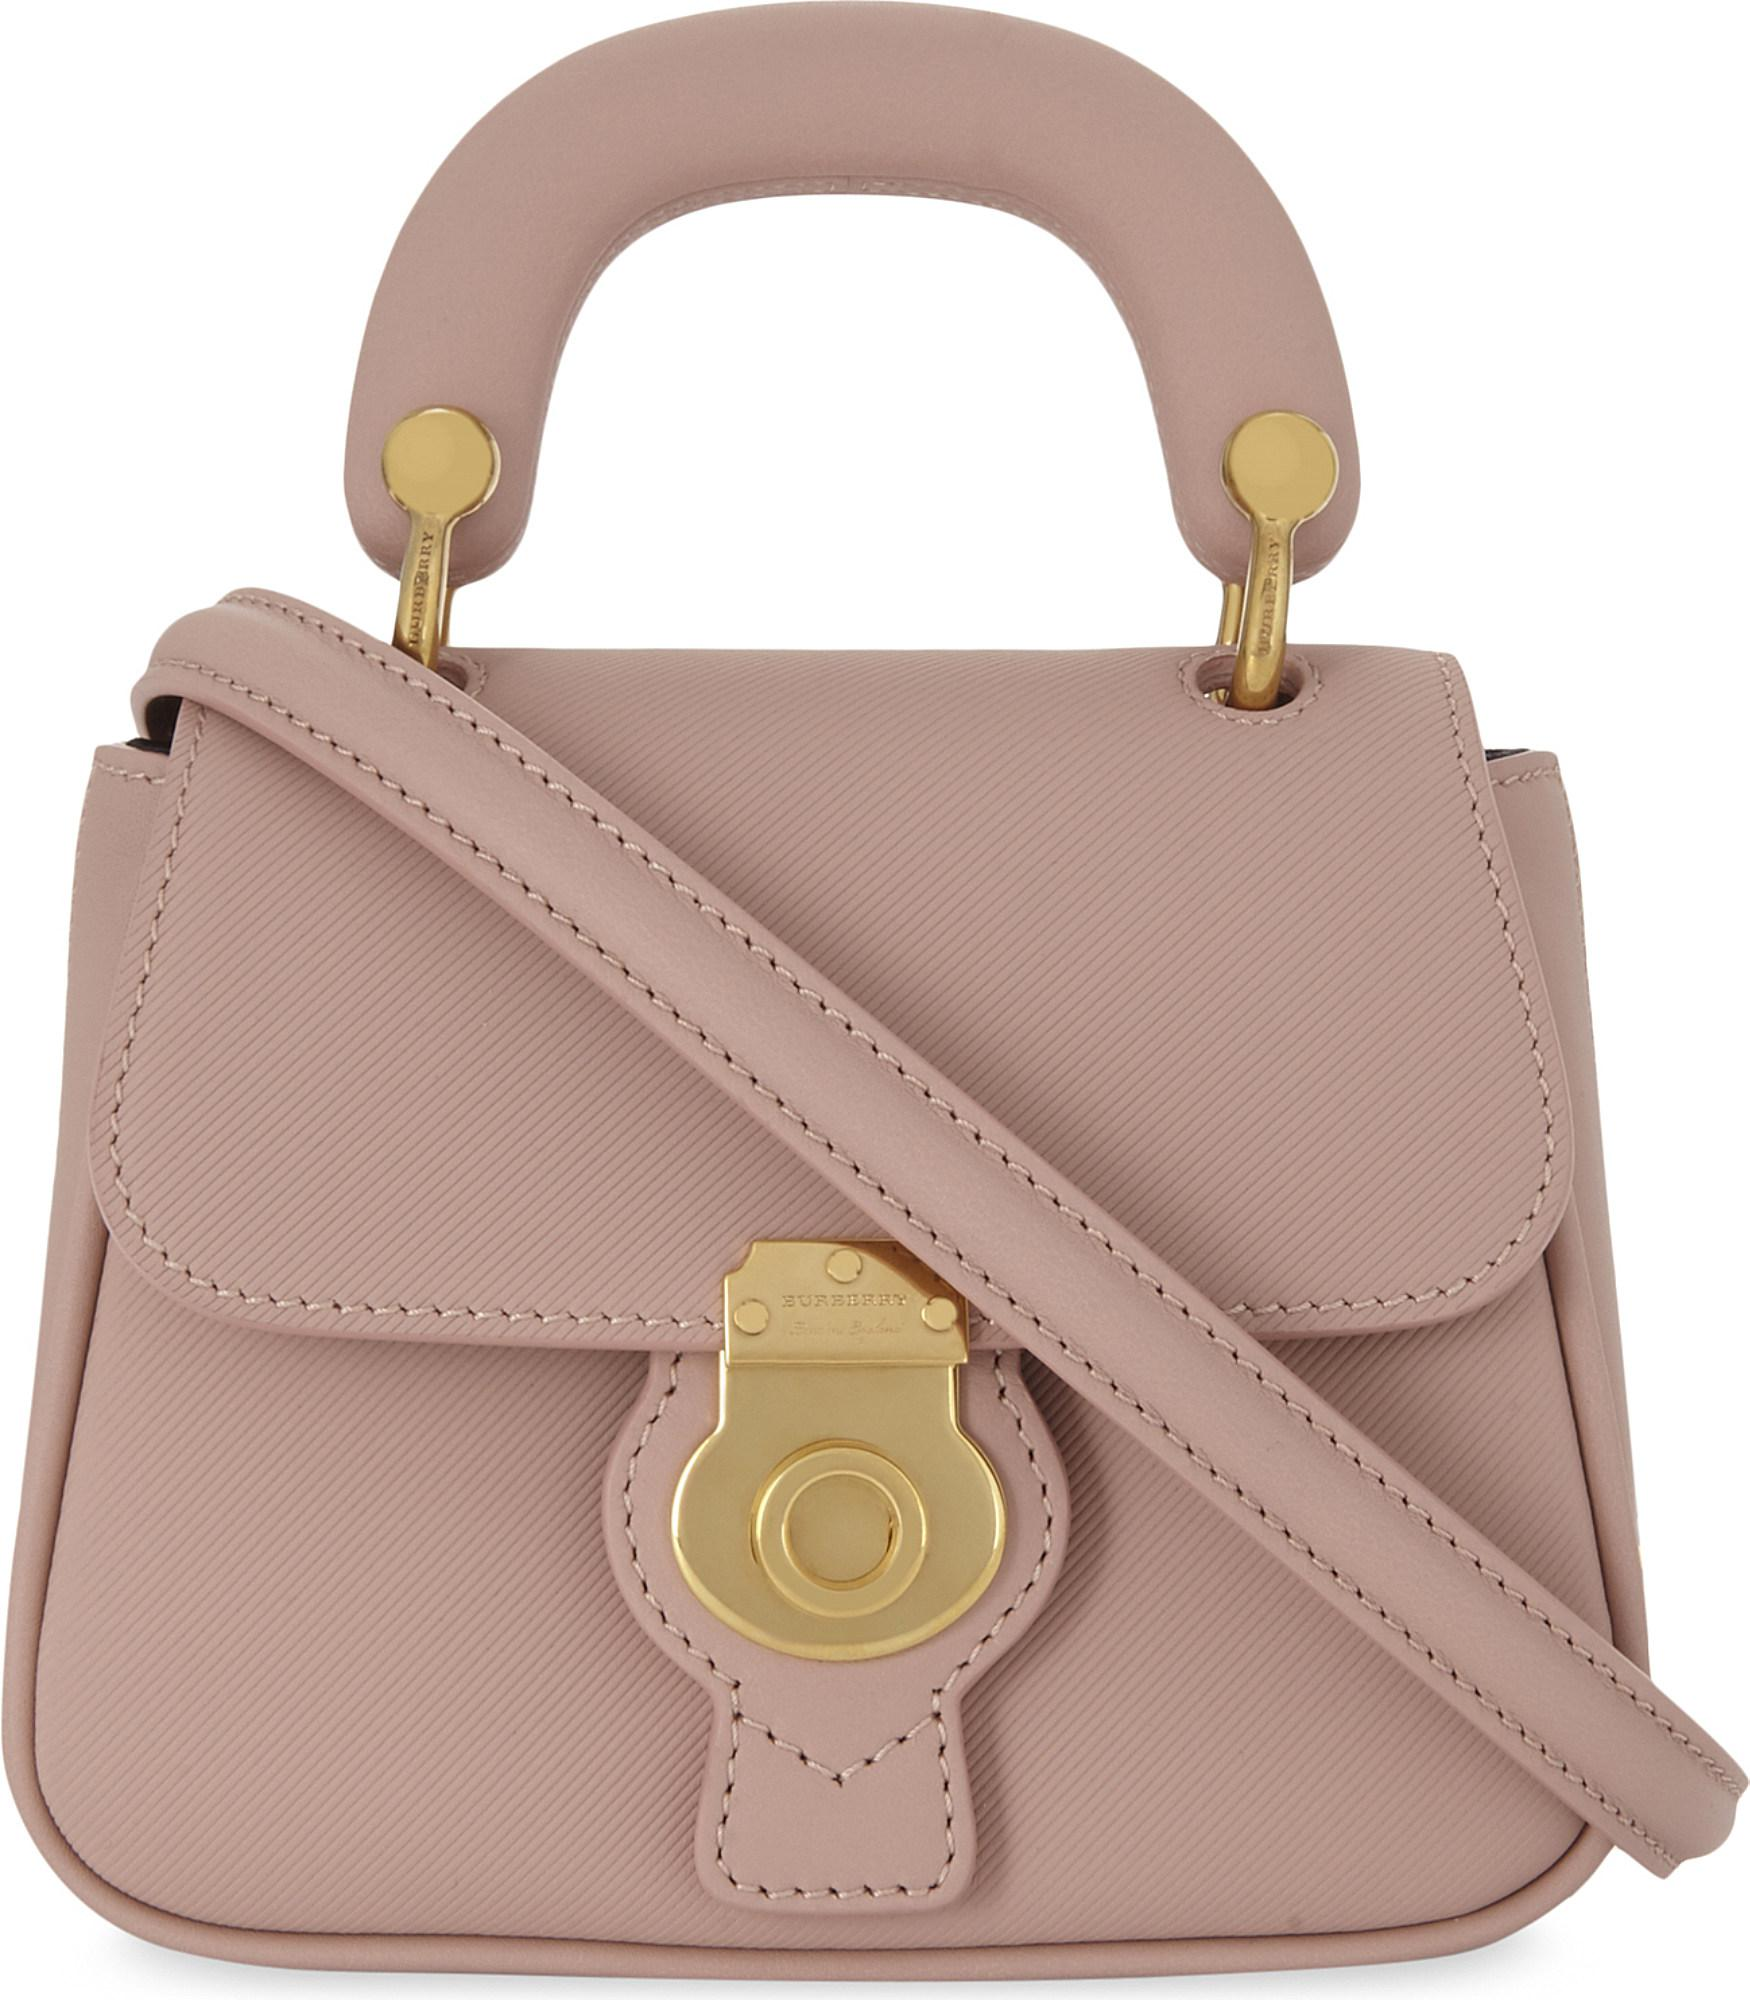 80db79140cc Burberry Dk88 Trench Leather Mini Cross-body Bag in Pink - Lyst